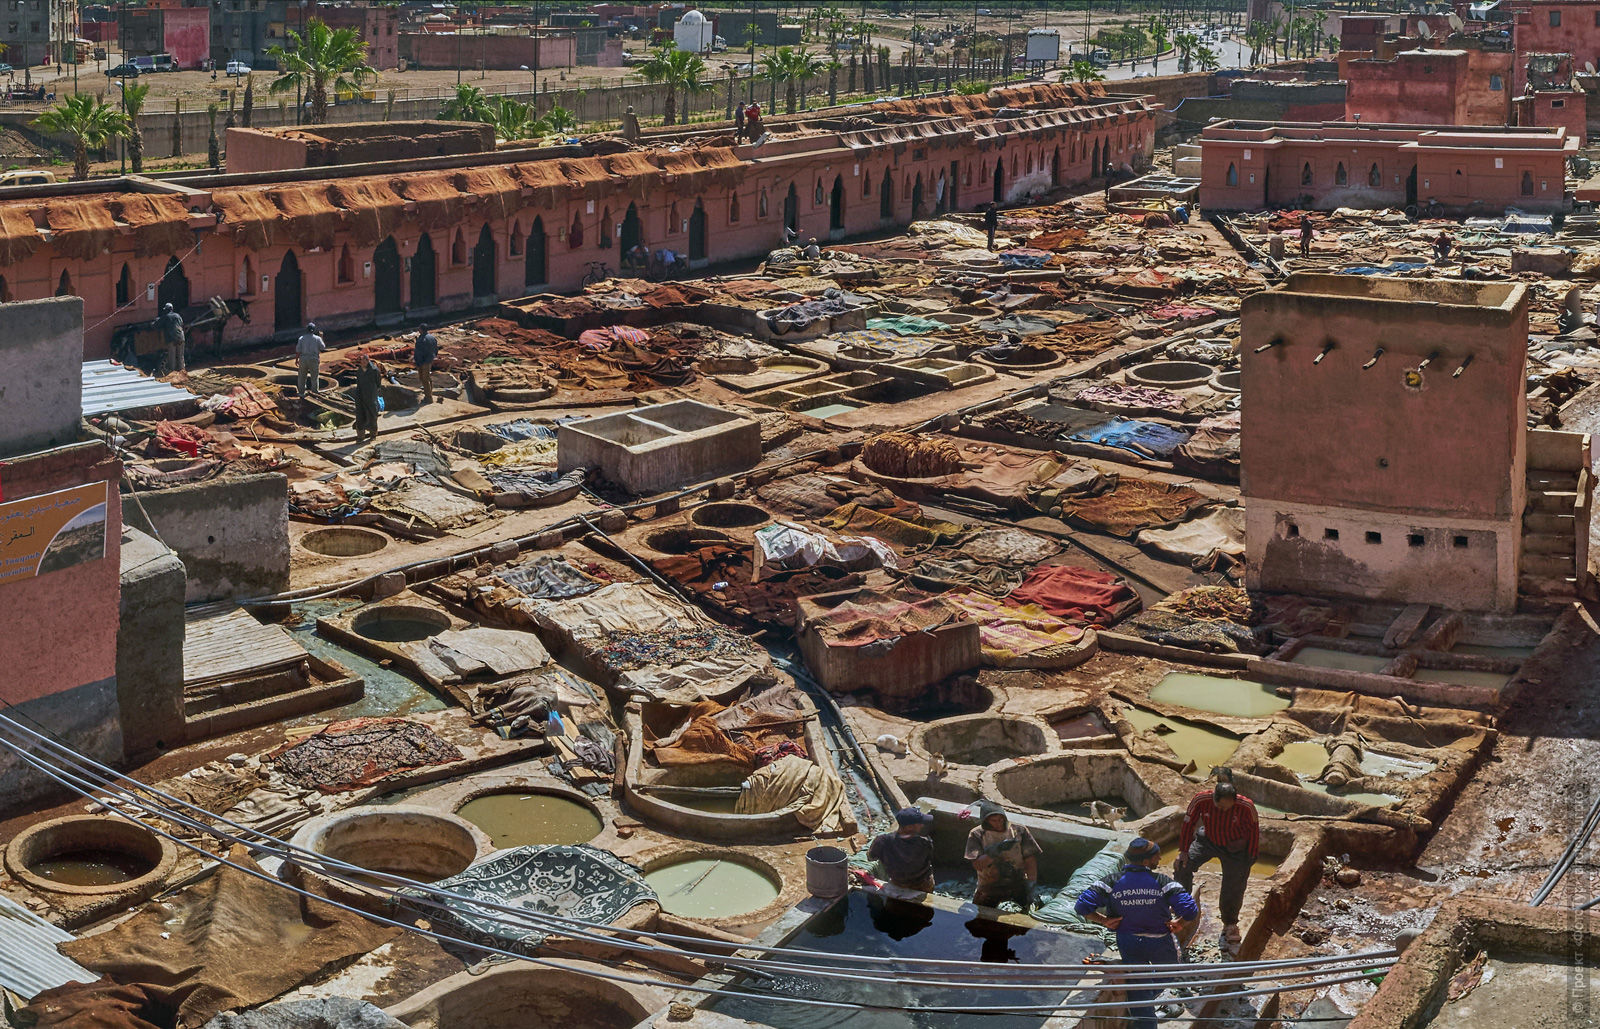 Dyeing of Marrakesh, Morocco. Adventure photo tour: medina, cascades, sands and ports of Morocco, April 4 - 17, 2020.